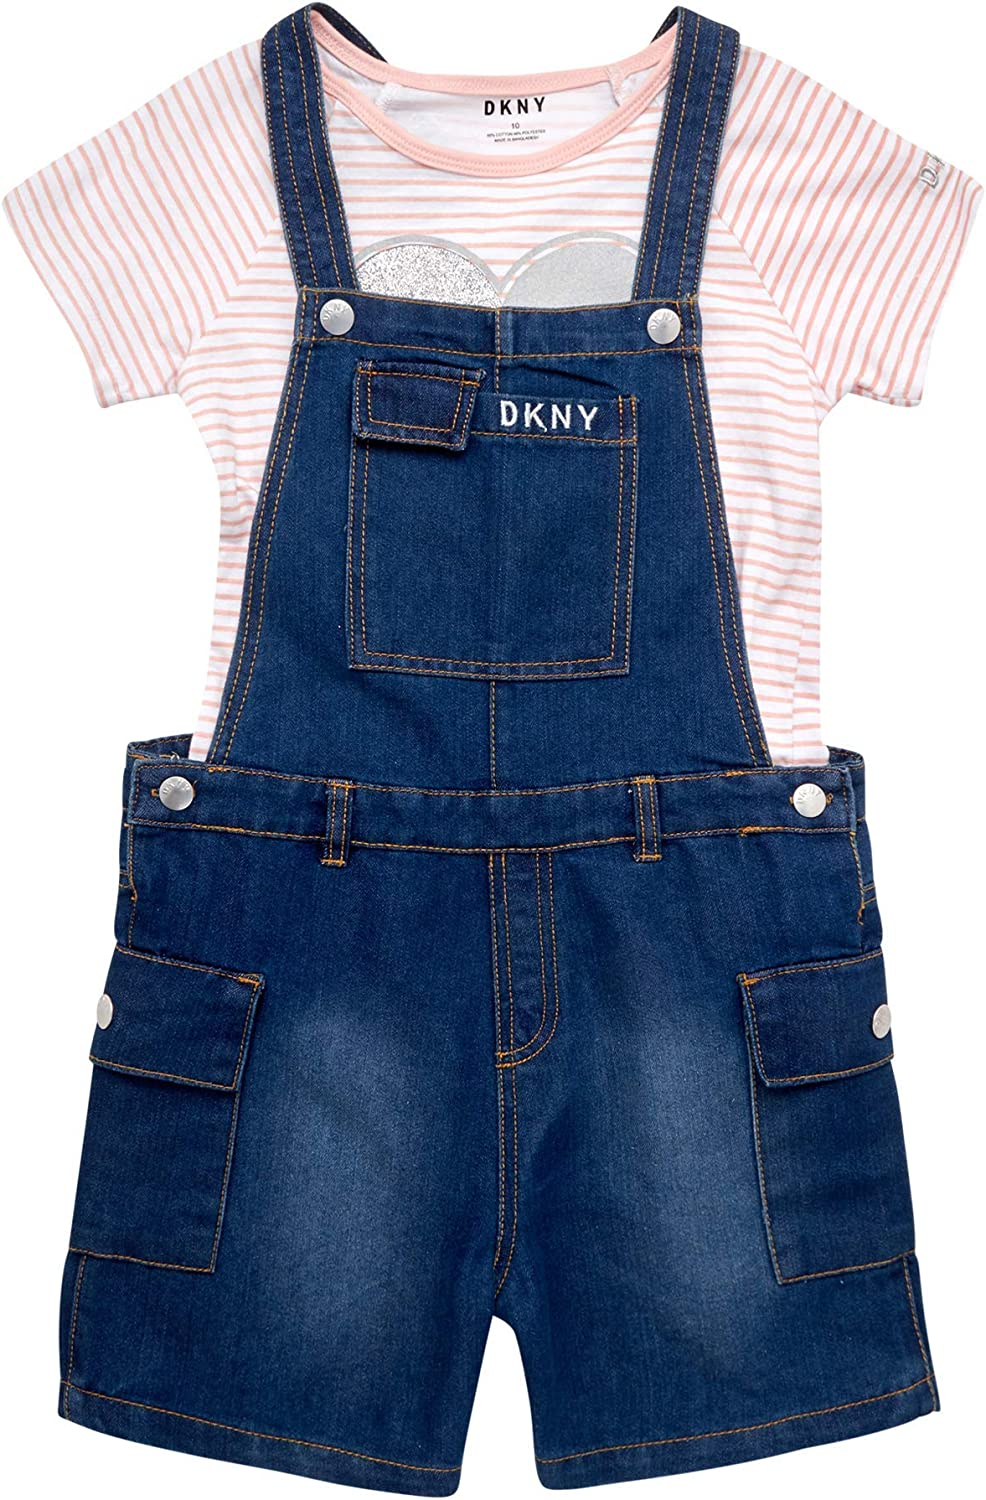 DKNY Girls' Overalls Set - Stretch Denim Shortalls Cheap Clearance SALE! Limited time! super special price Sl Short with